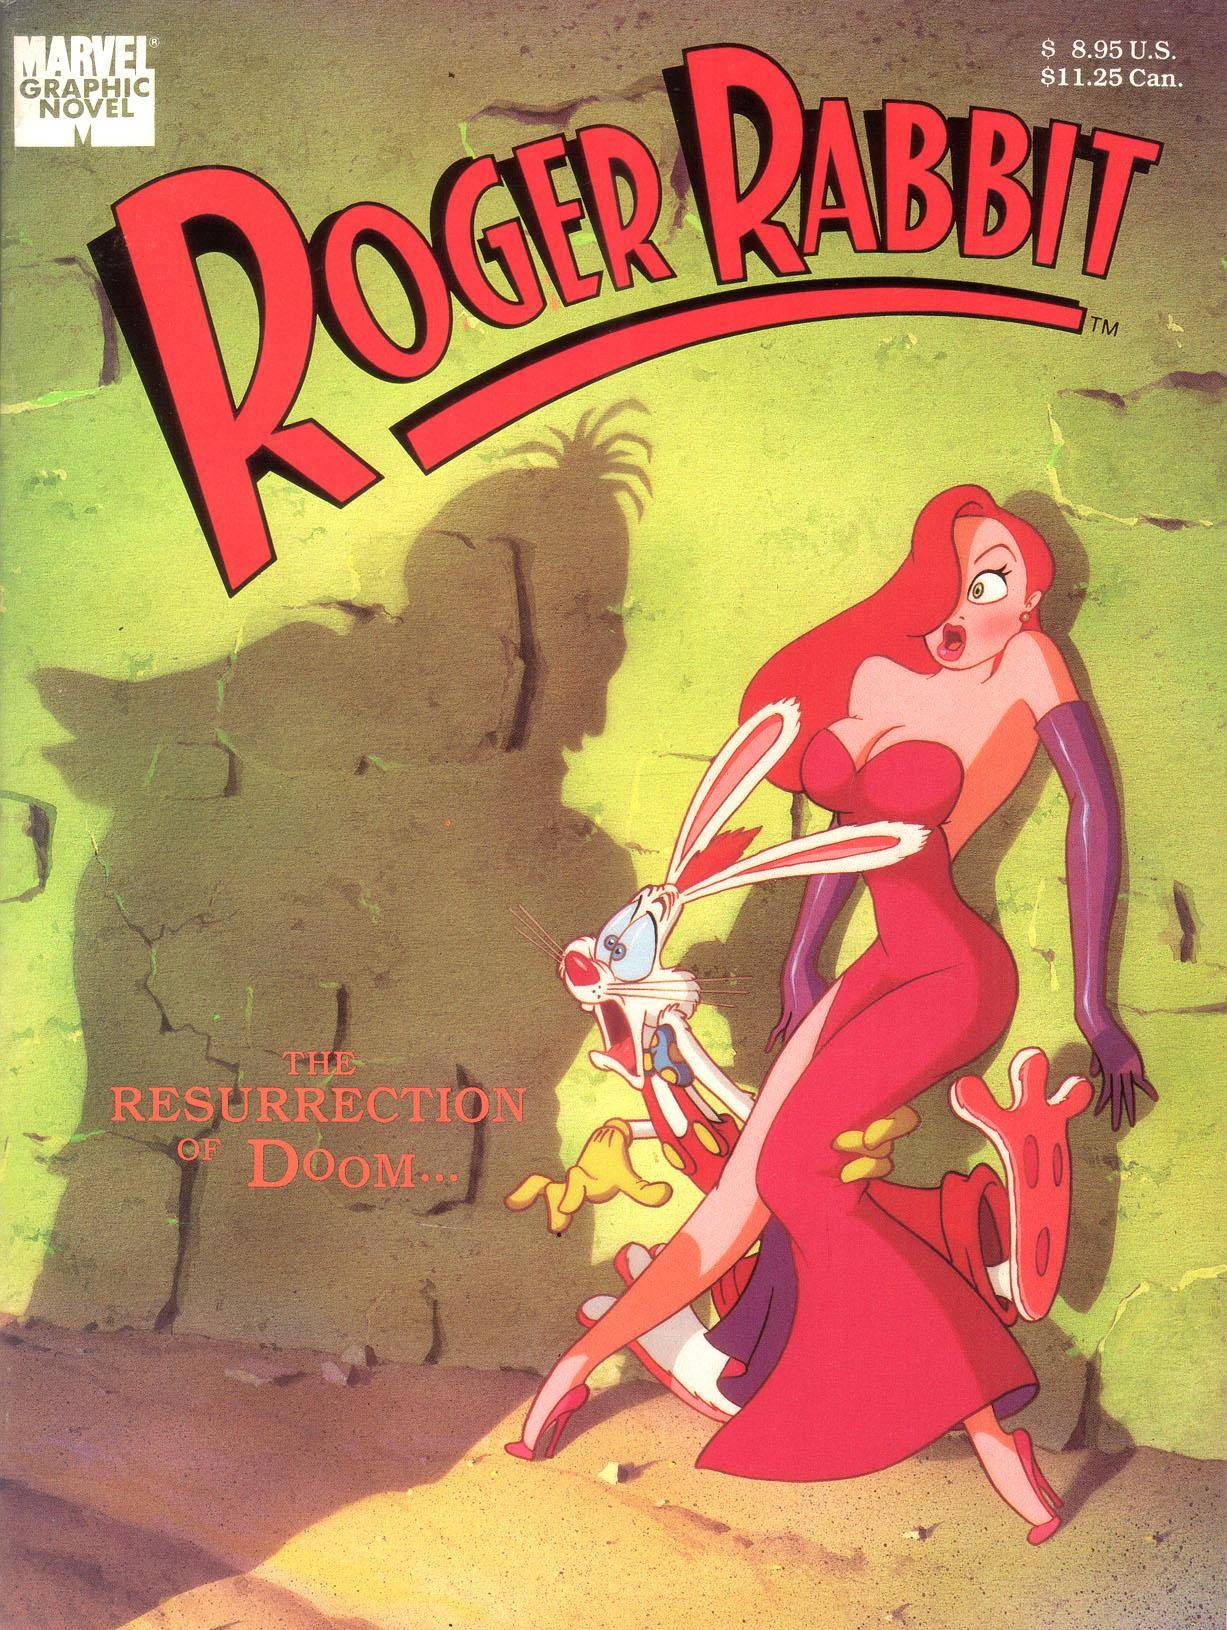 Marvel Graphic Novel 54 - Roger Rabbit 1989